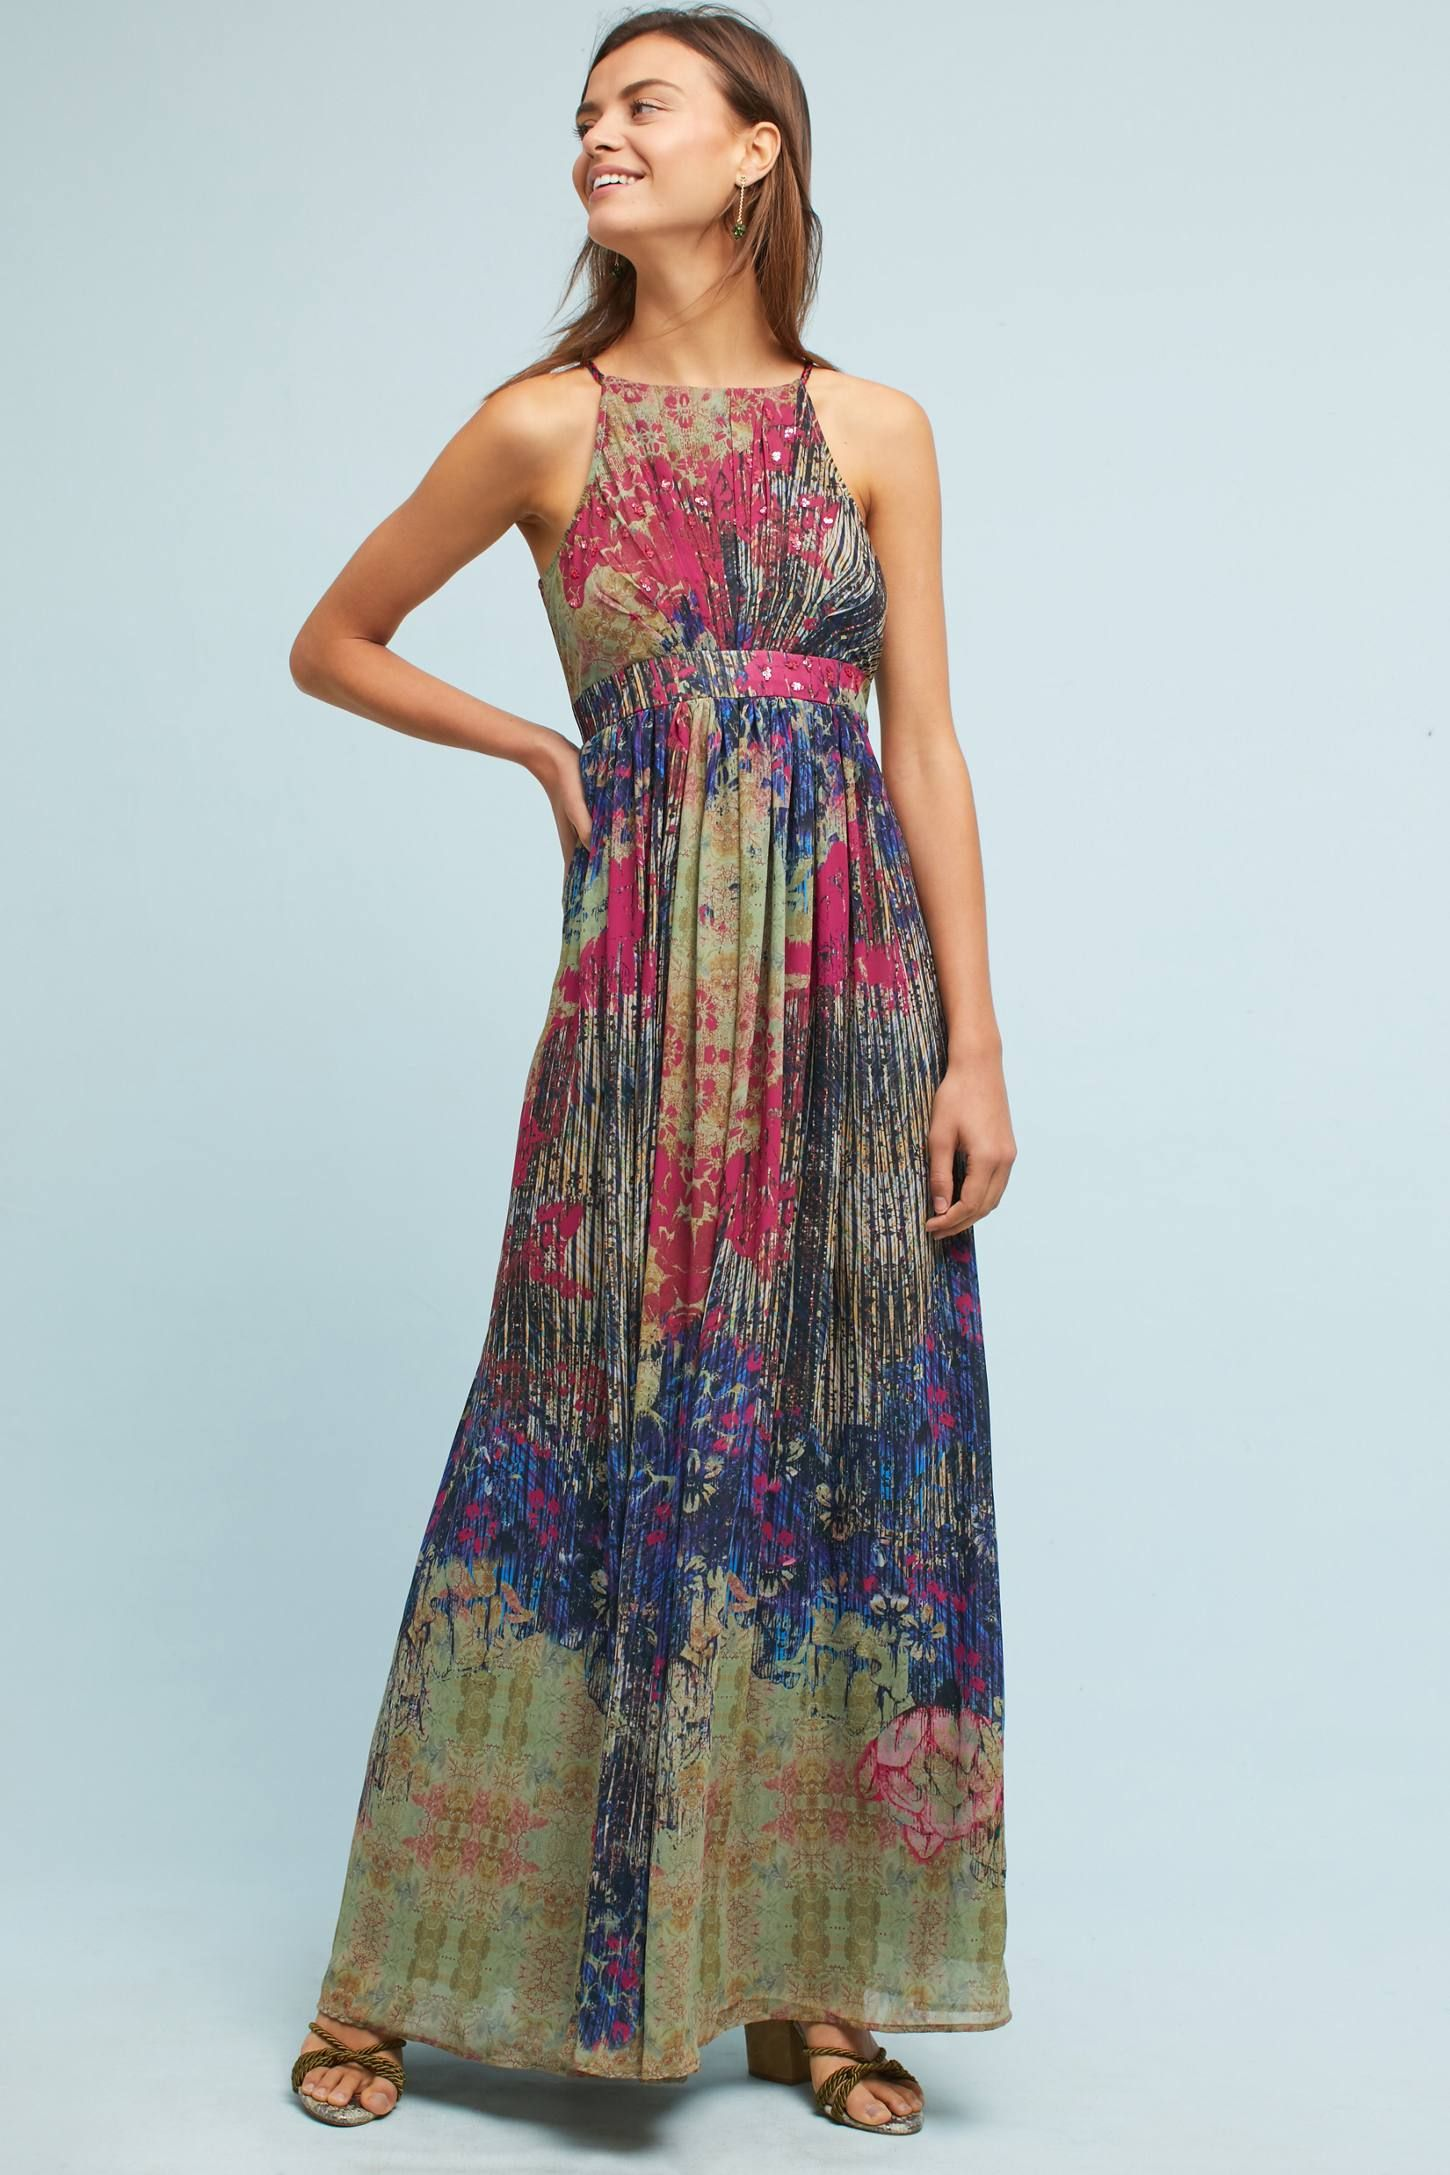 Abstracted floral maxi dress floral maxi dress floral maxi and